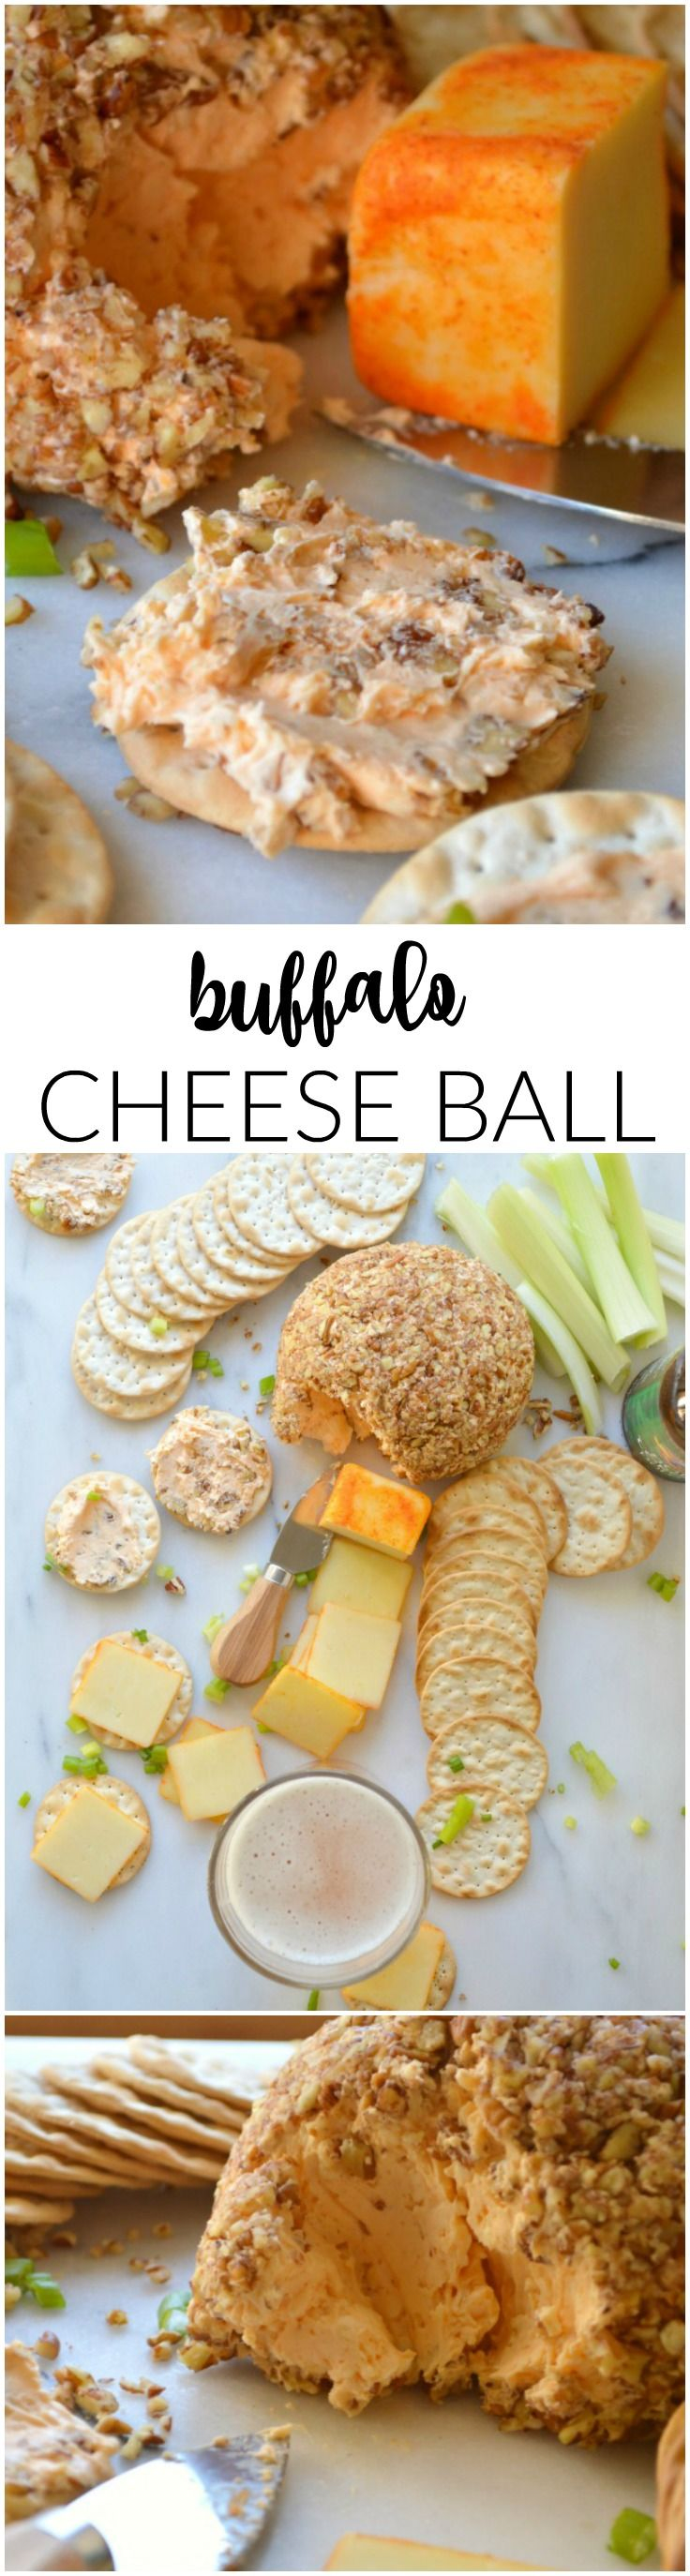 This Buffalo Cheese Ball is a recipe that's perfect for lovers of both cheese and spice. You need just a few ingredients and a few minutes.